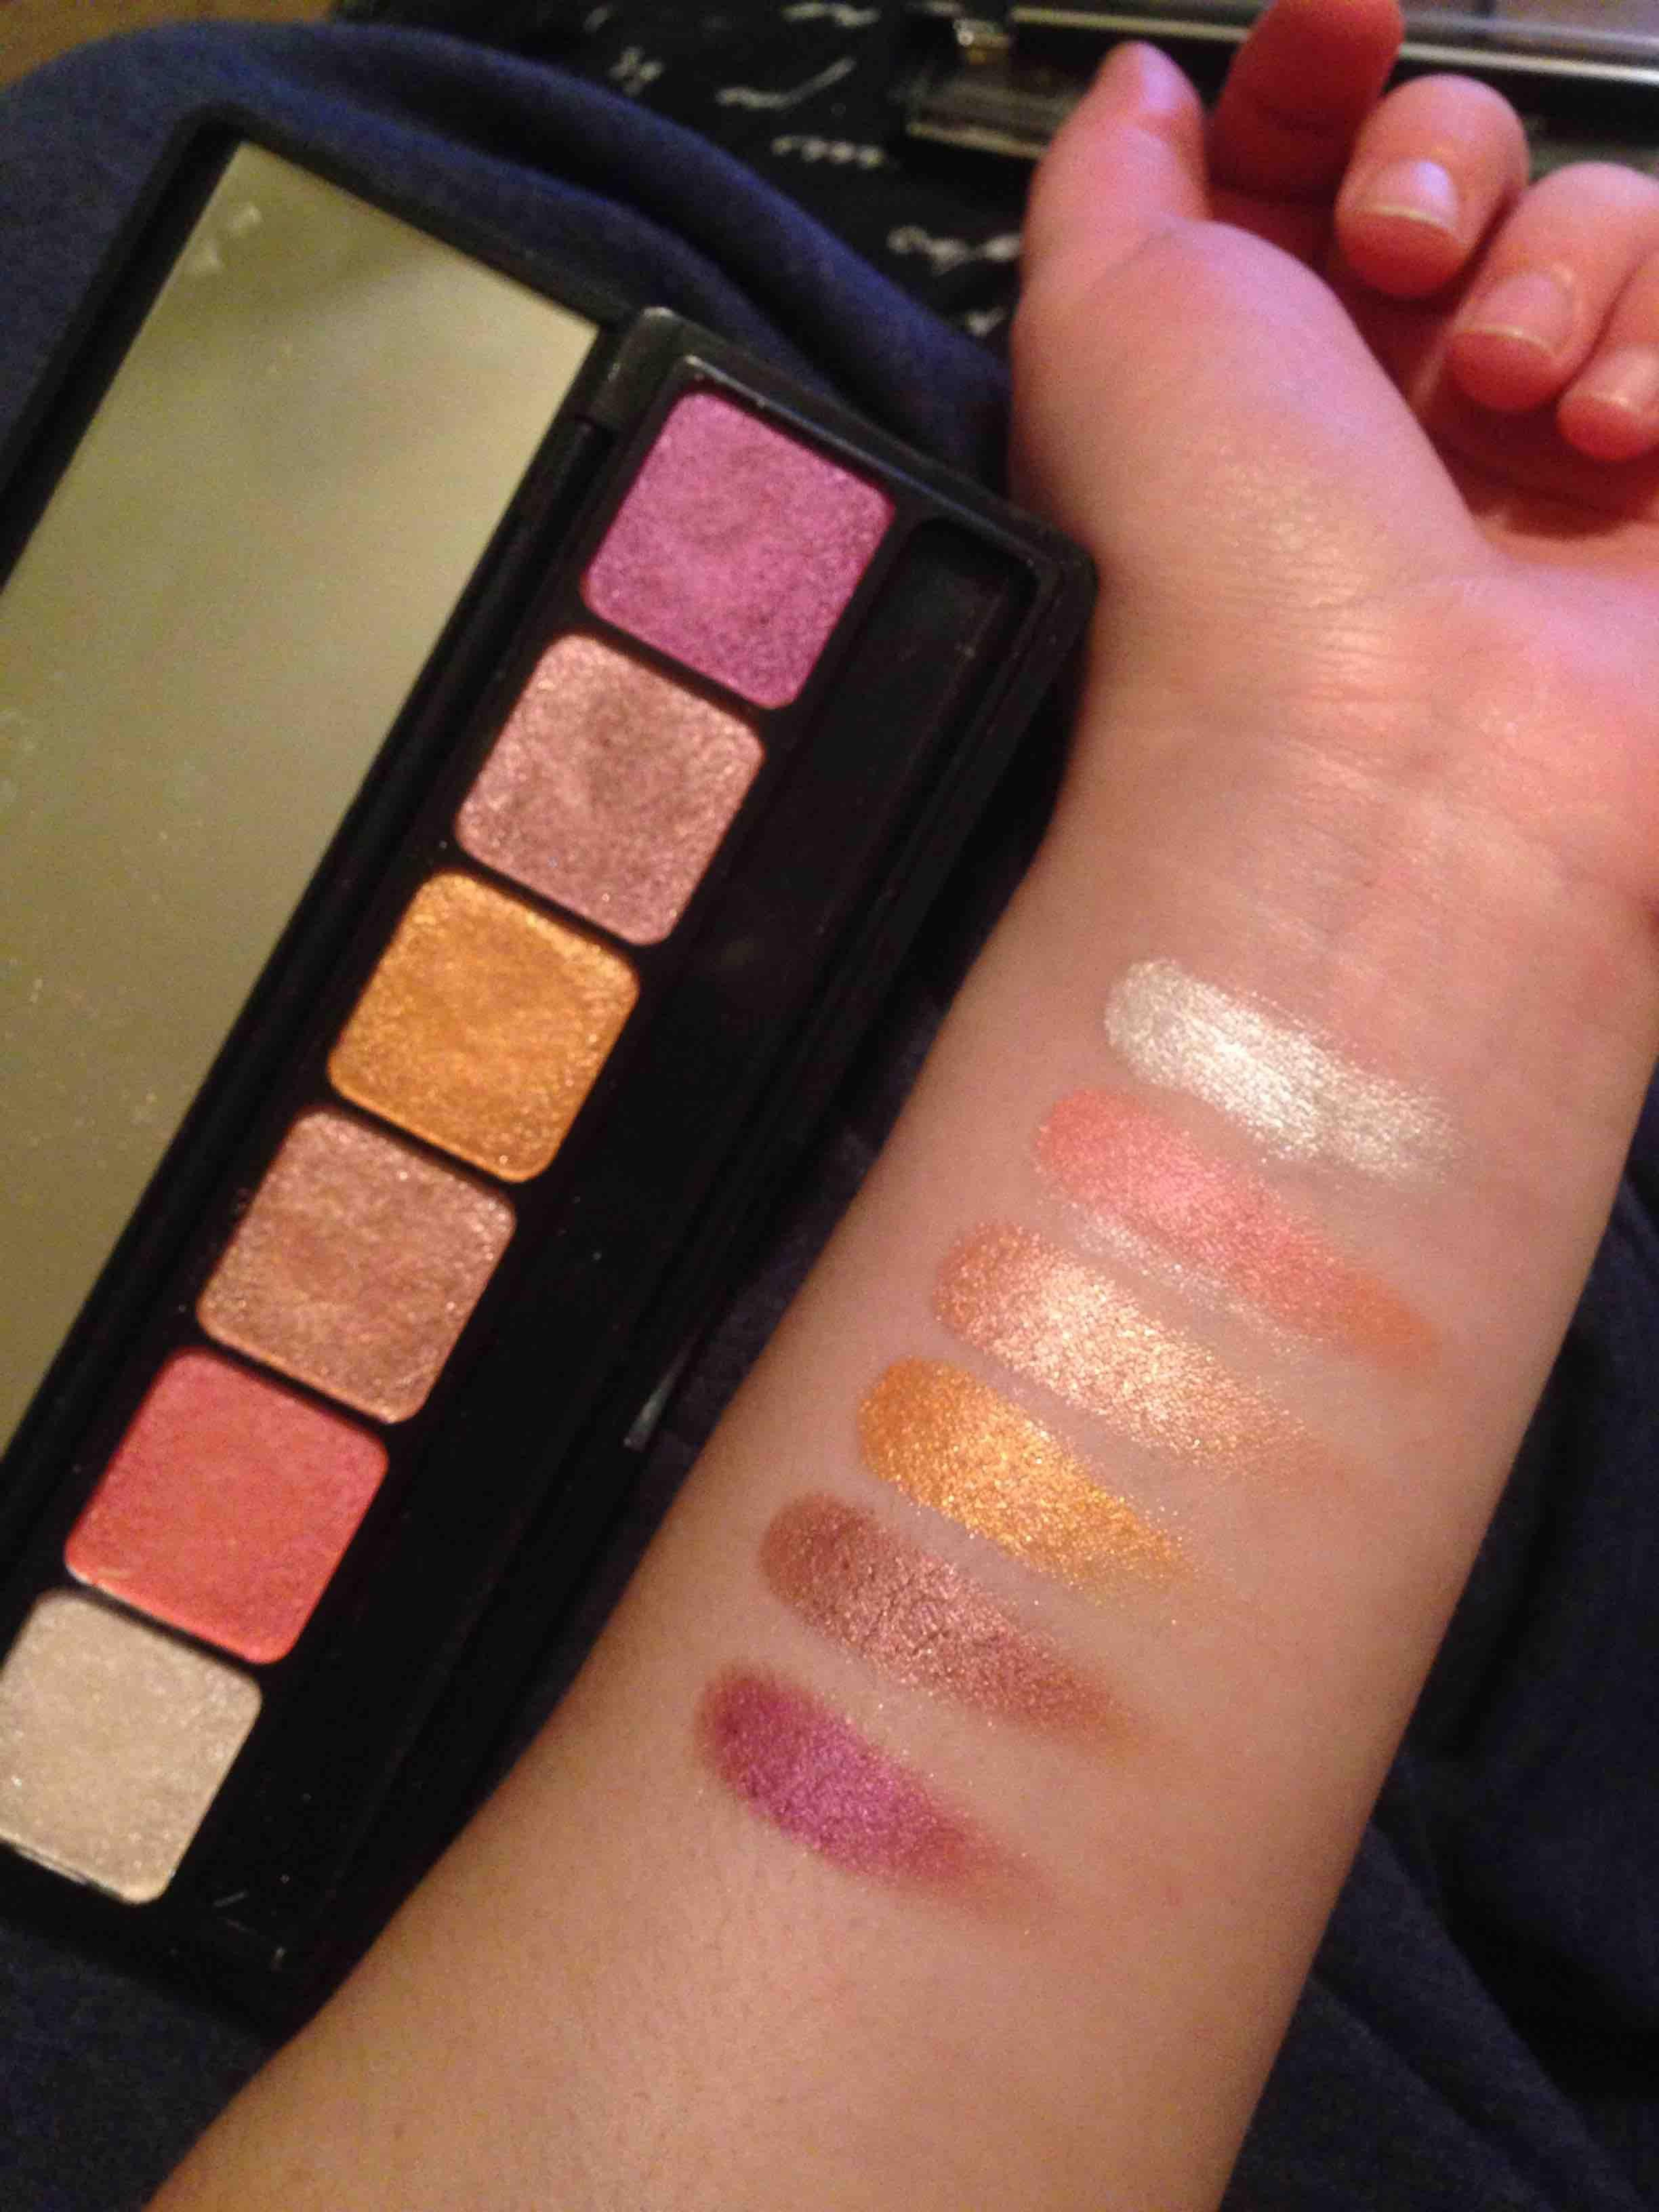 Rose Gold Eyeshadow Palette - Sunset by e.l.f. #14